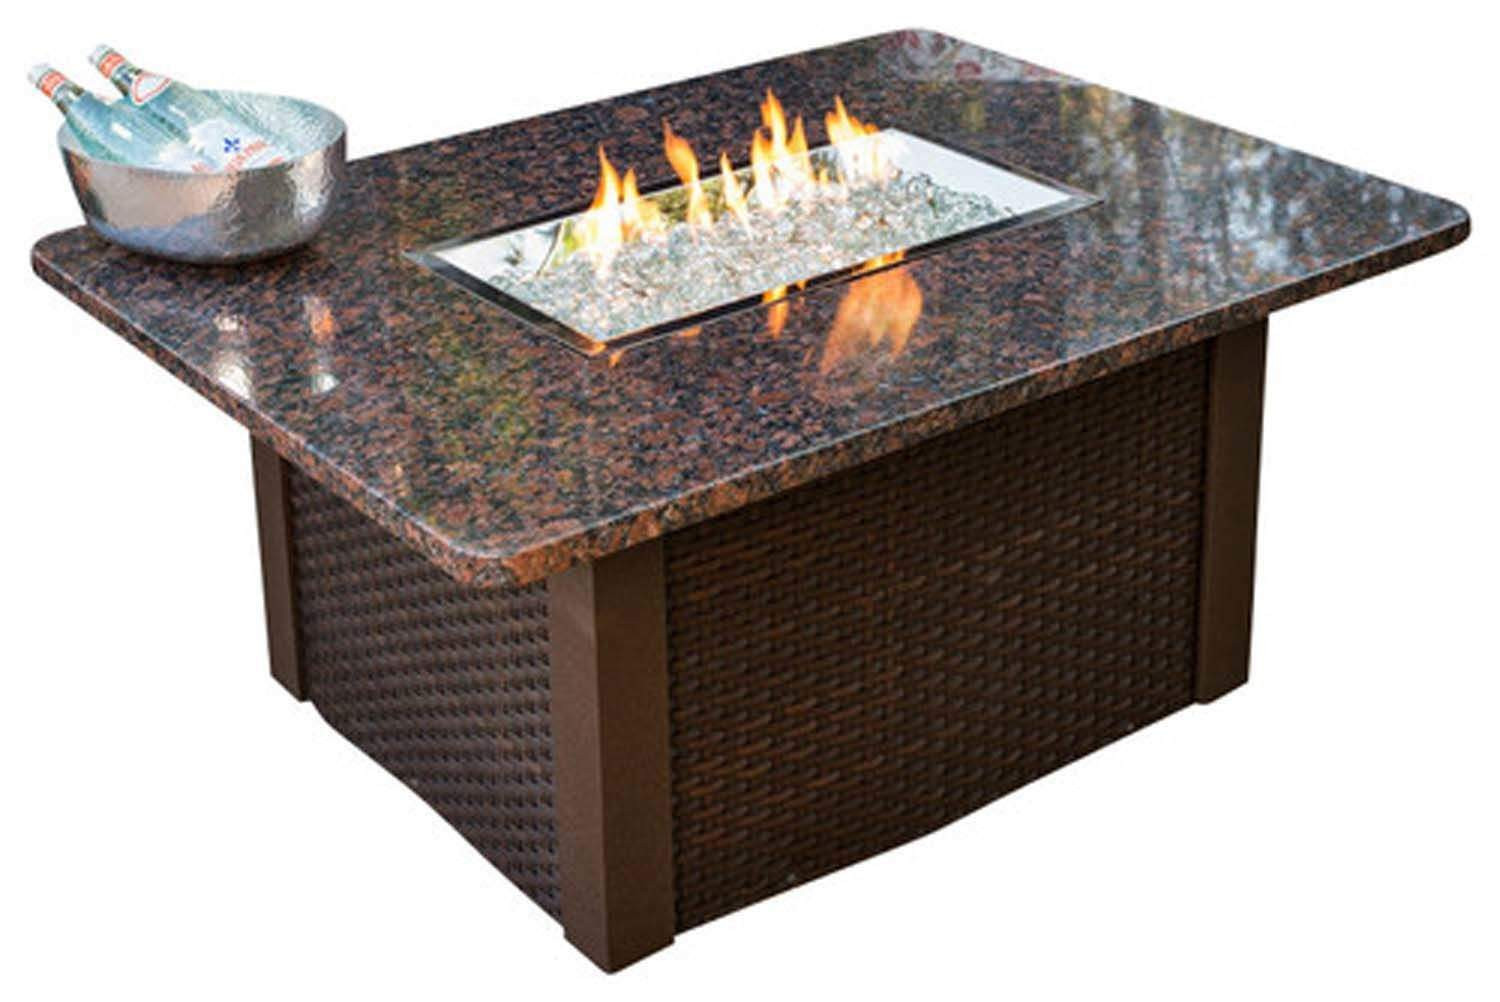 Best ideas about Propane Fire Pit Coffee Table . Save or Pin Outdoor Greatroom Grandstone Gas Fire Pit Coffee Table Now.